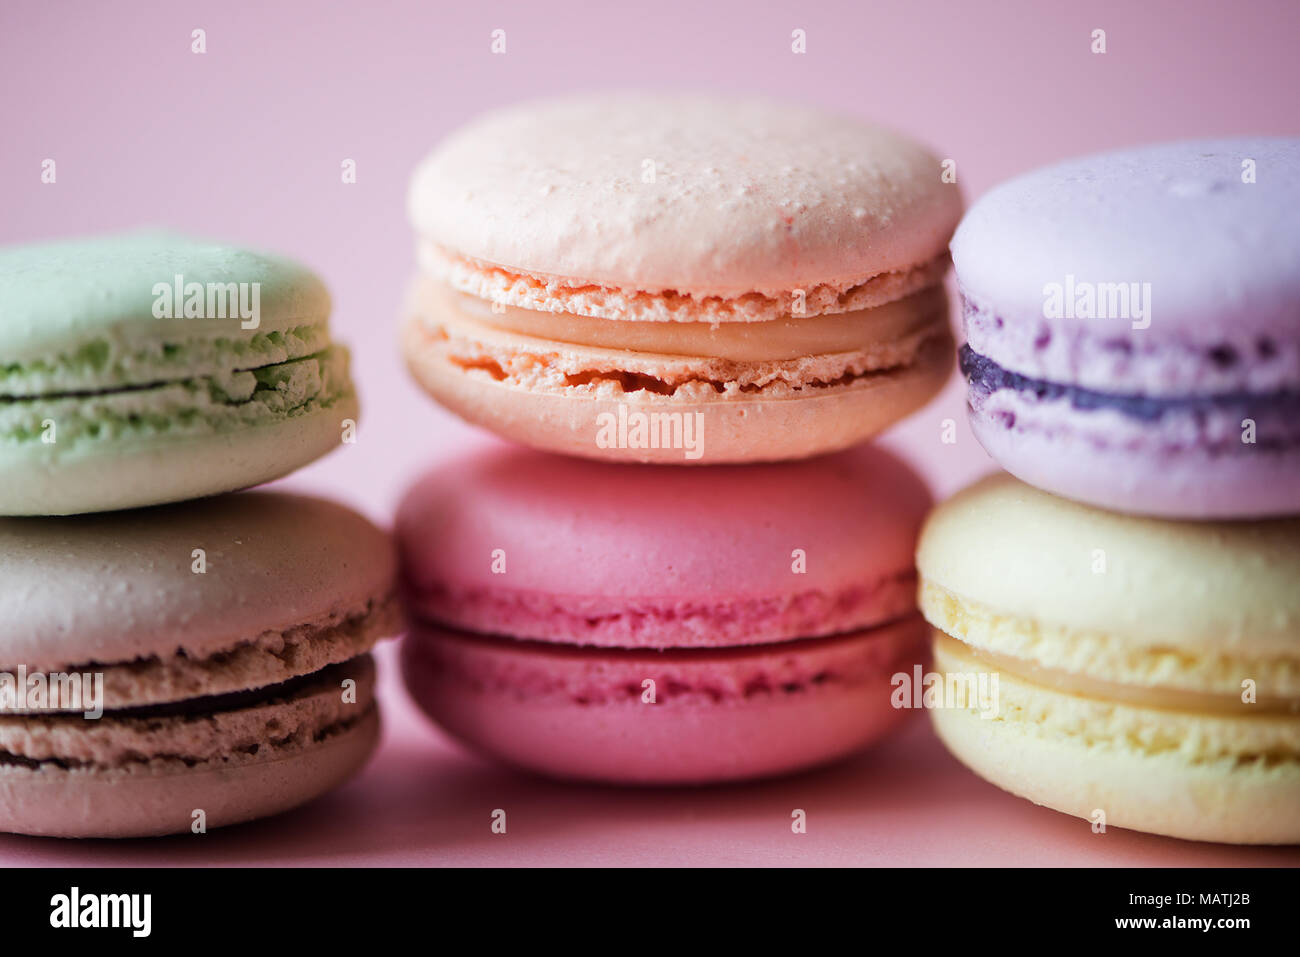 Sweet French macaroons cake (or macarons) with vintage pastel colored tone on pink background. - Stock Image